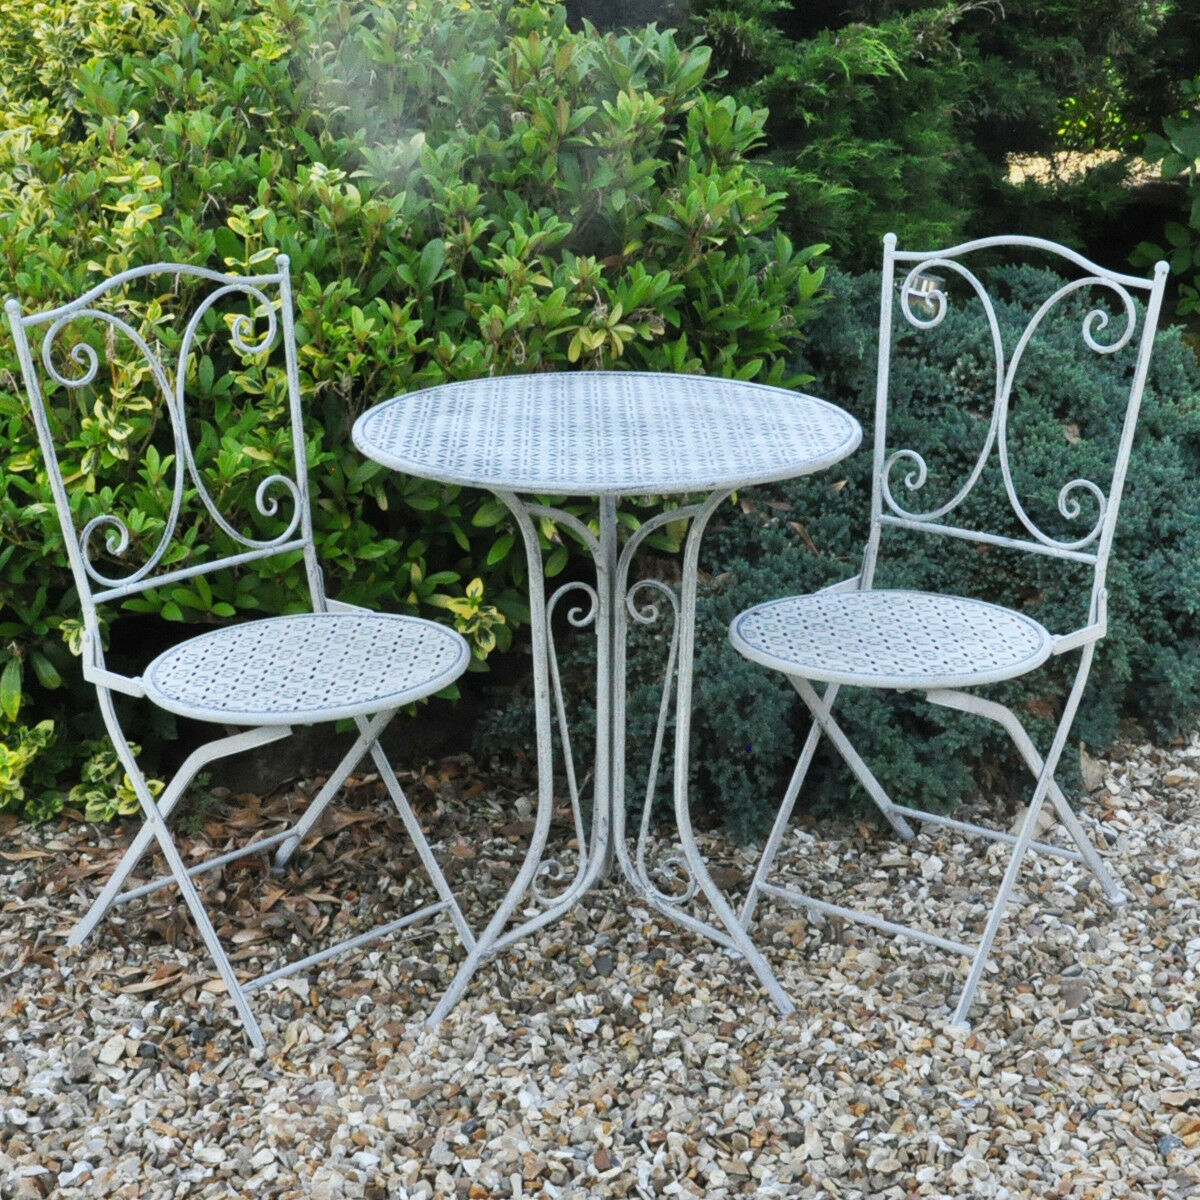 Garden Furniture - Garden Patio Bistro Table & 2 Chairs Furniture Dining Set Metal Round Grey Lace